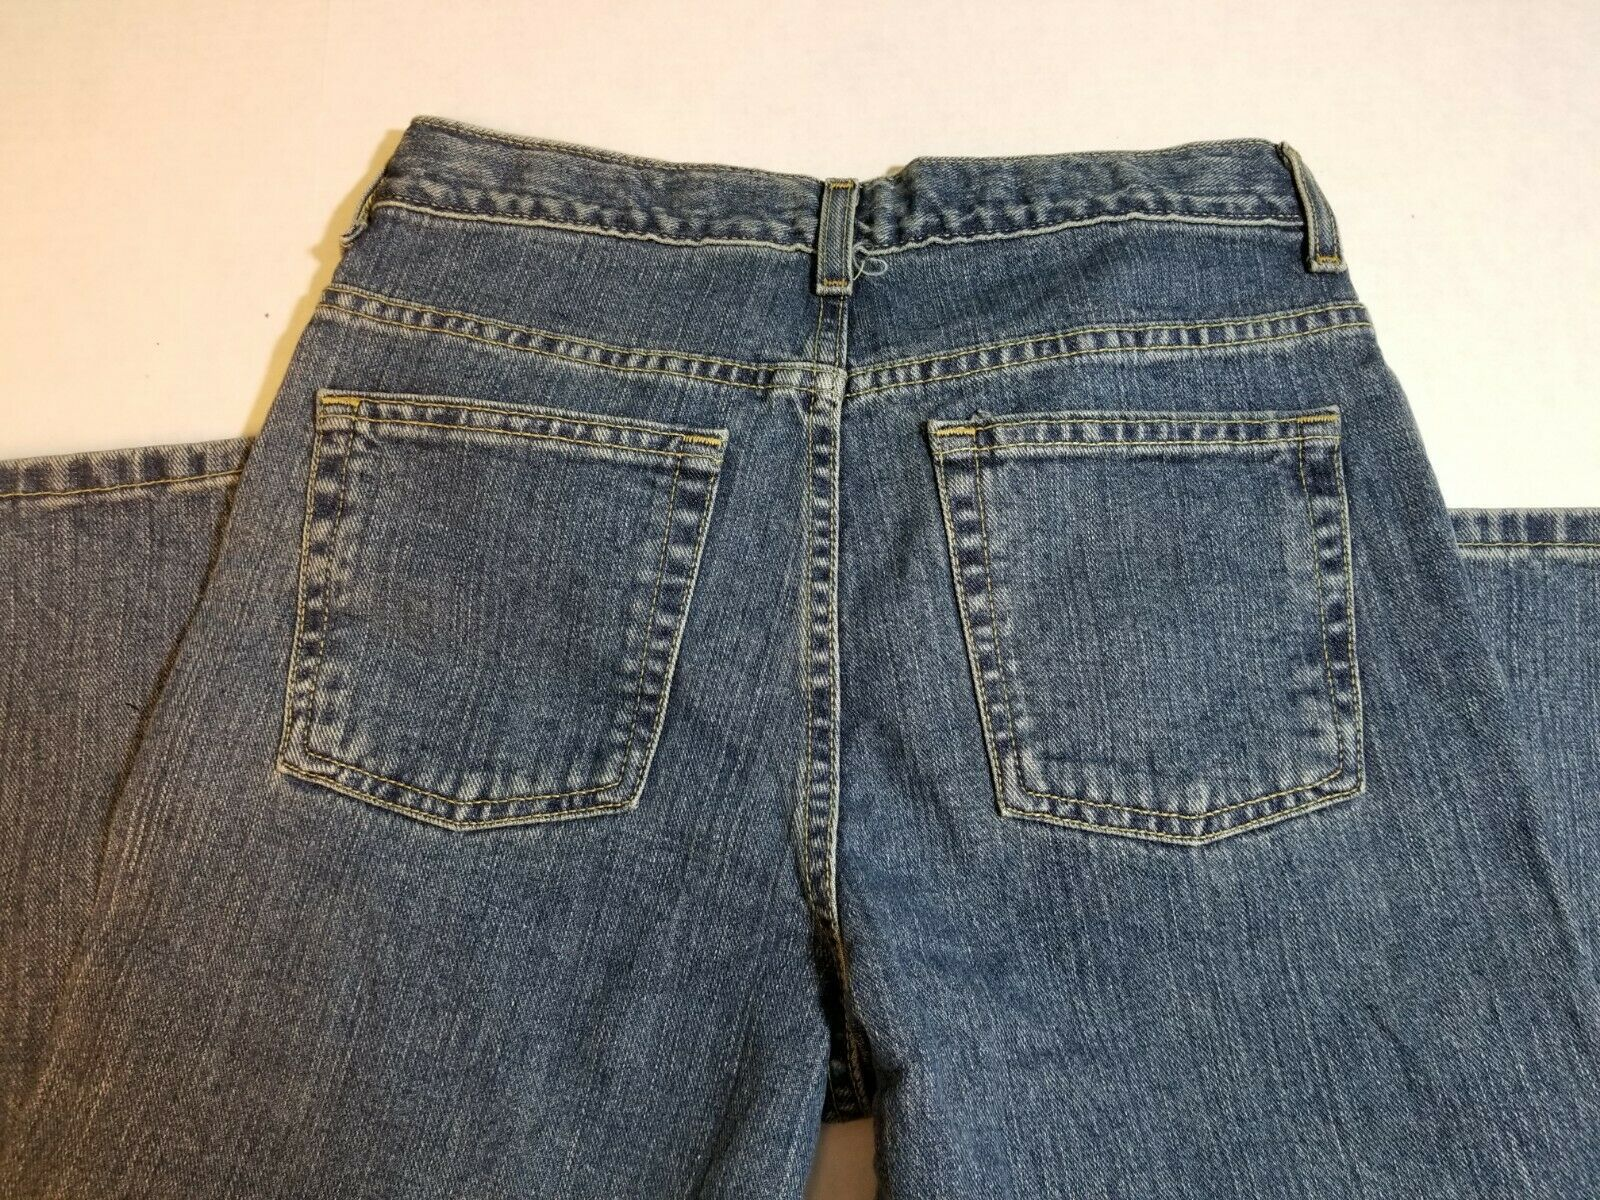 NWT Route 66 Boys Husky Bootcut Jeans Size 12H Medium Wash Pants image 3